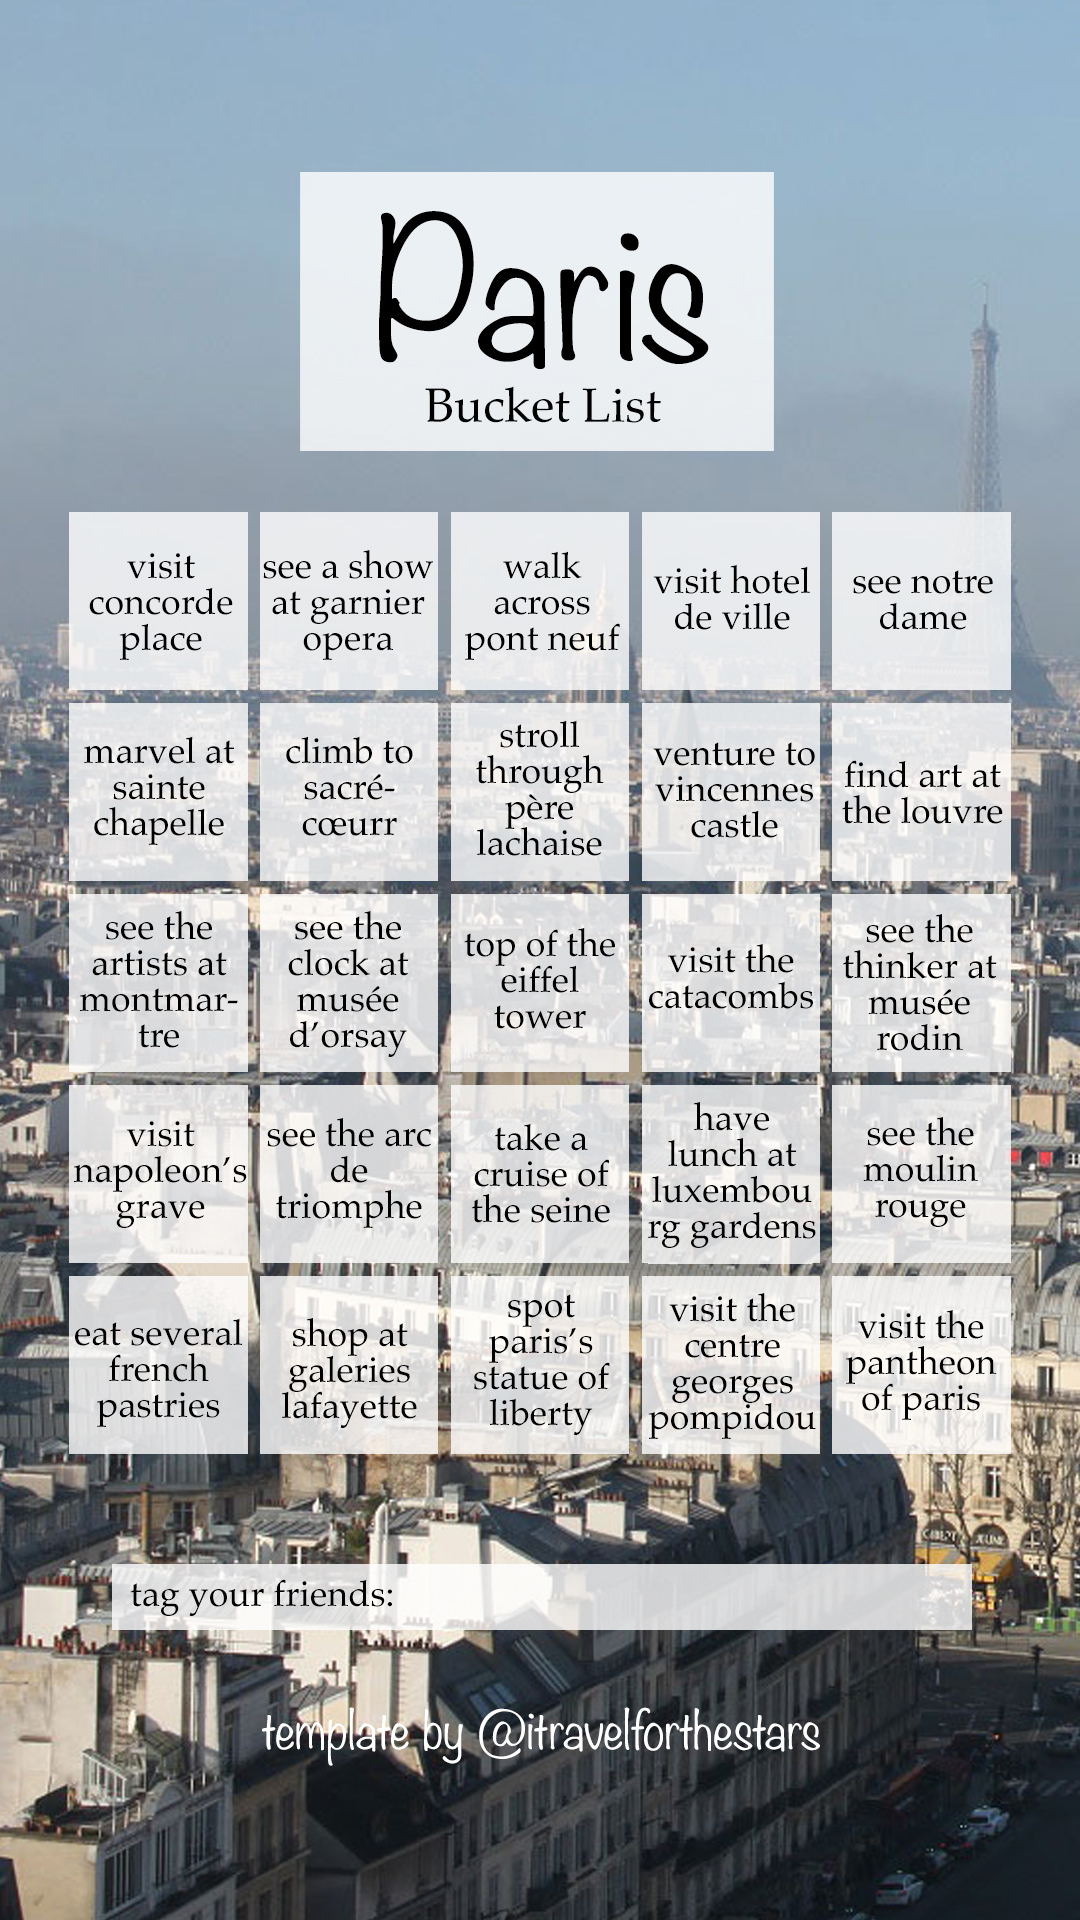 Paris Bucket List for Instagram